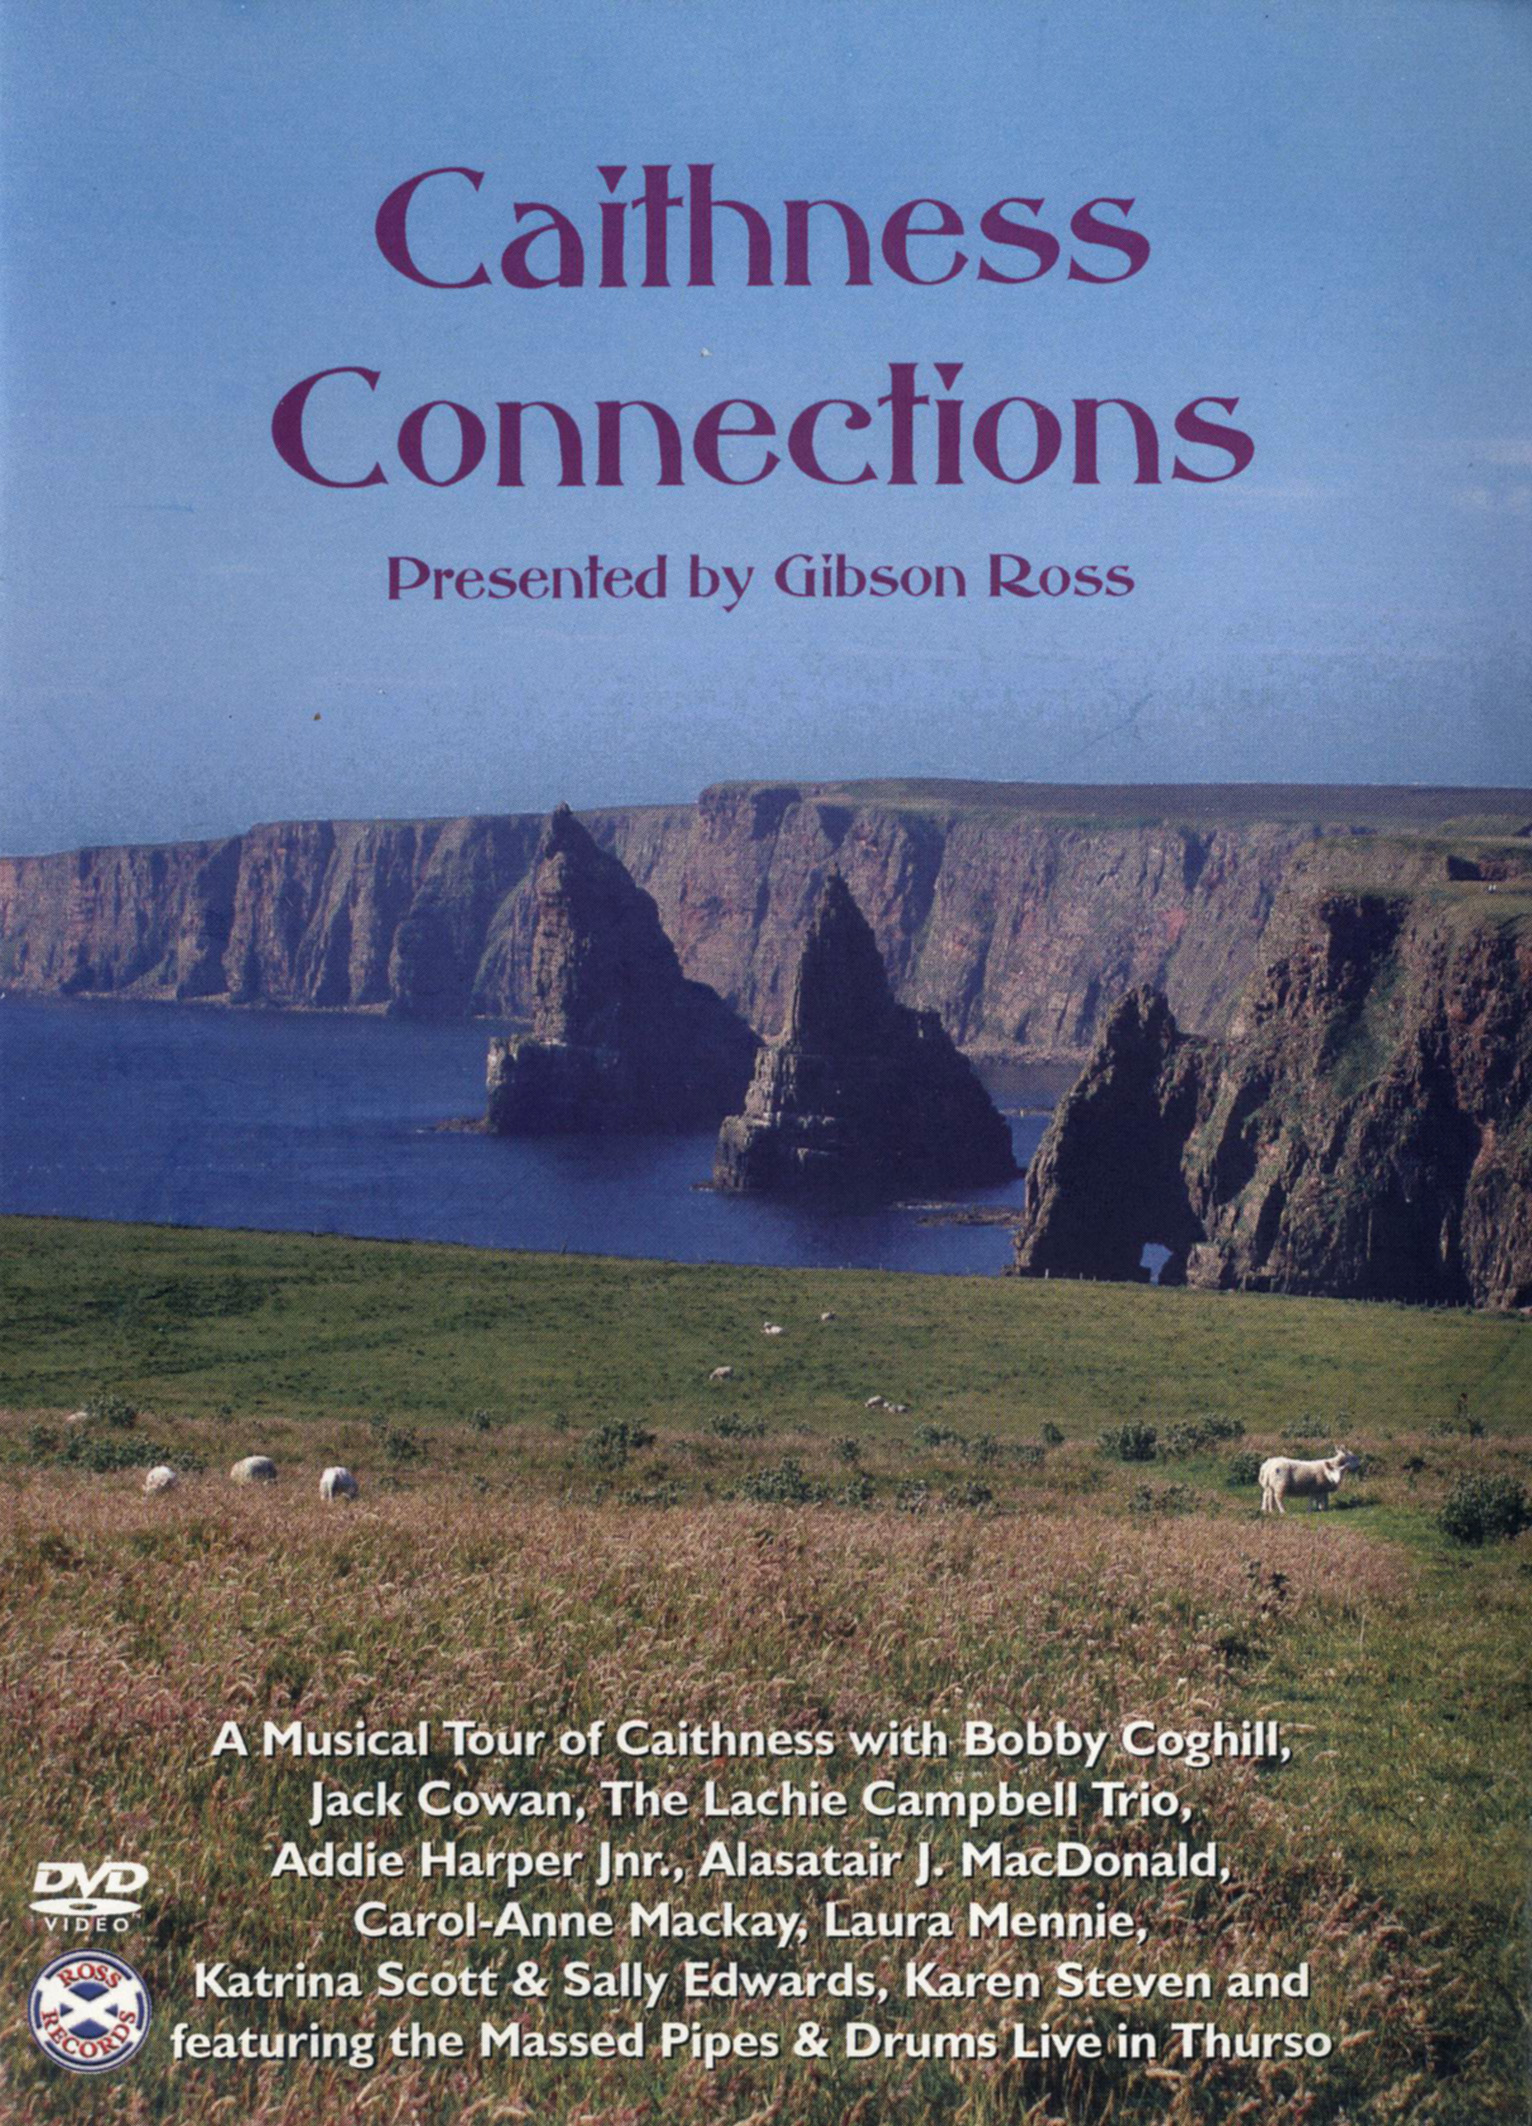 Caithness Connections